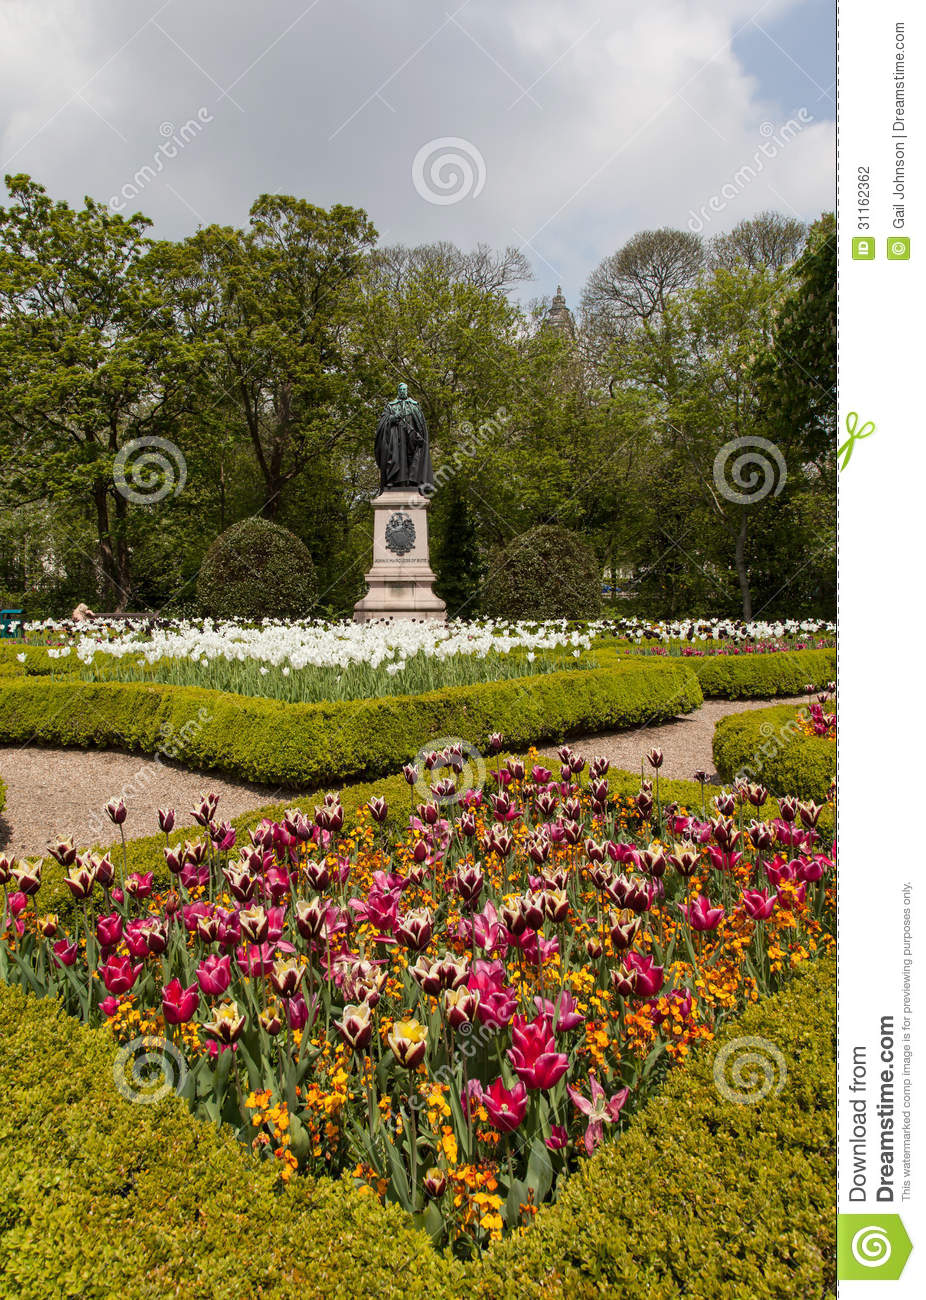 Bute Park flowers stock photo. Image of cardiff, cathay - 31162362